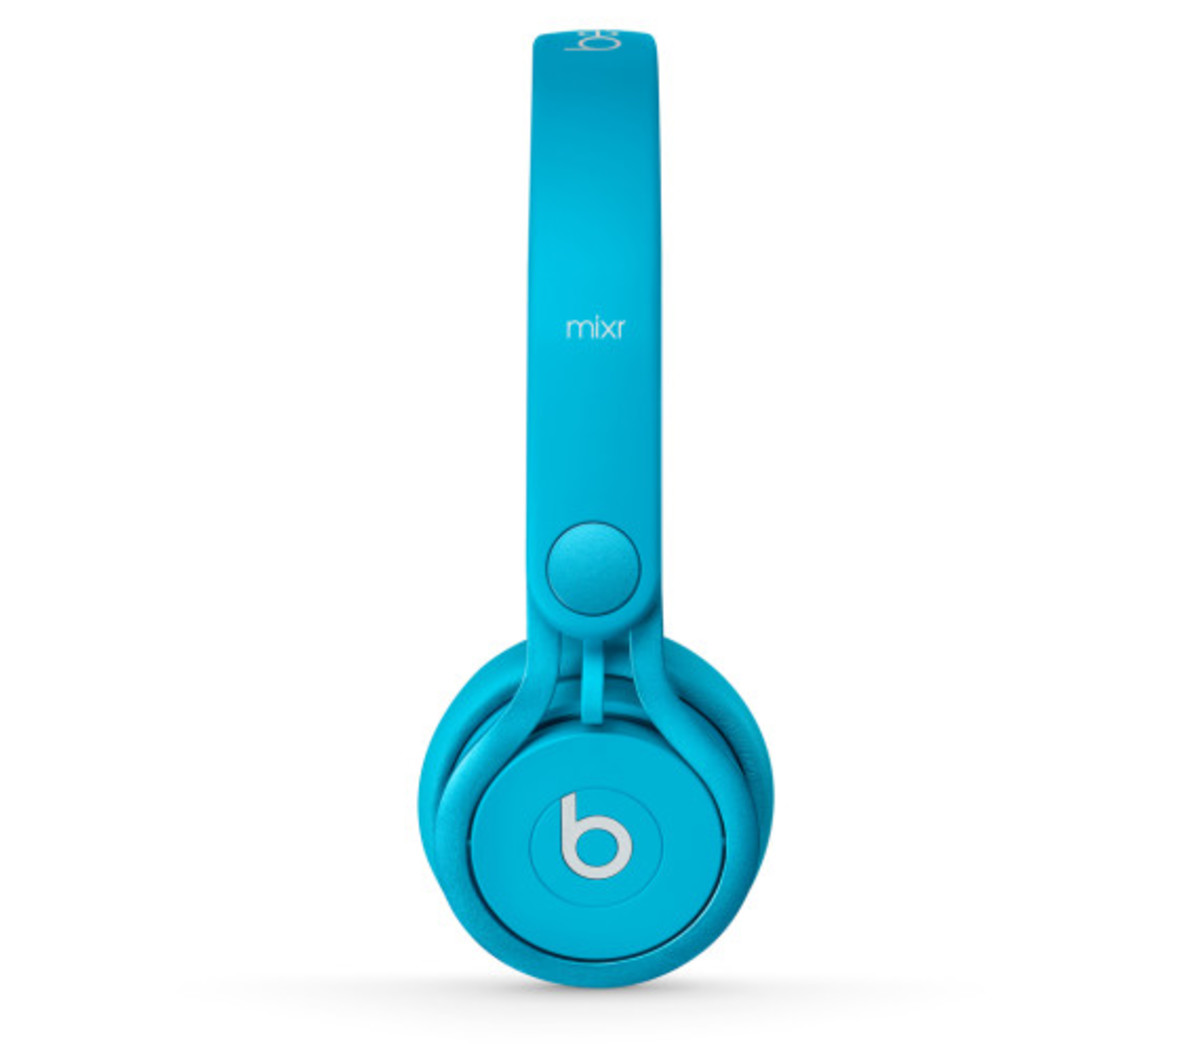 beats-by-dre-mixr-headphones-new-summer-colors-10